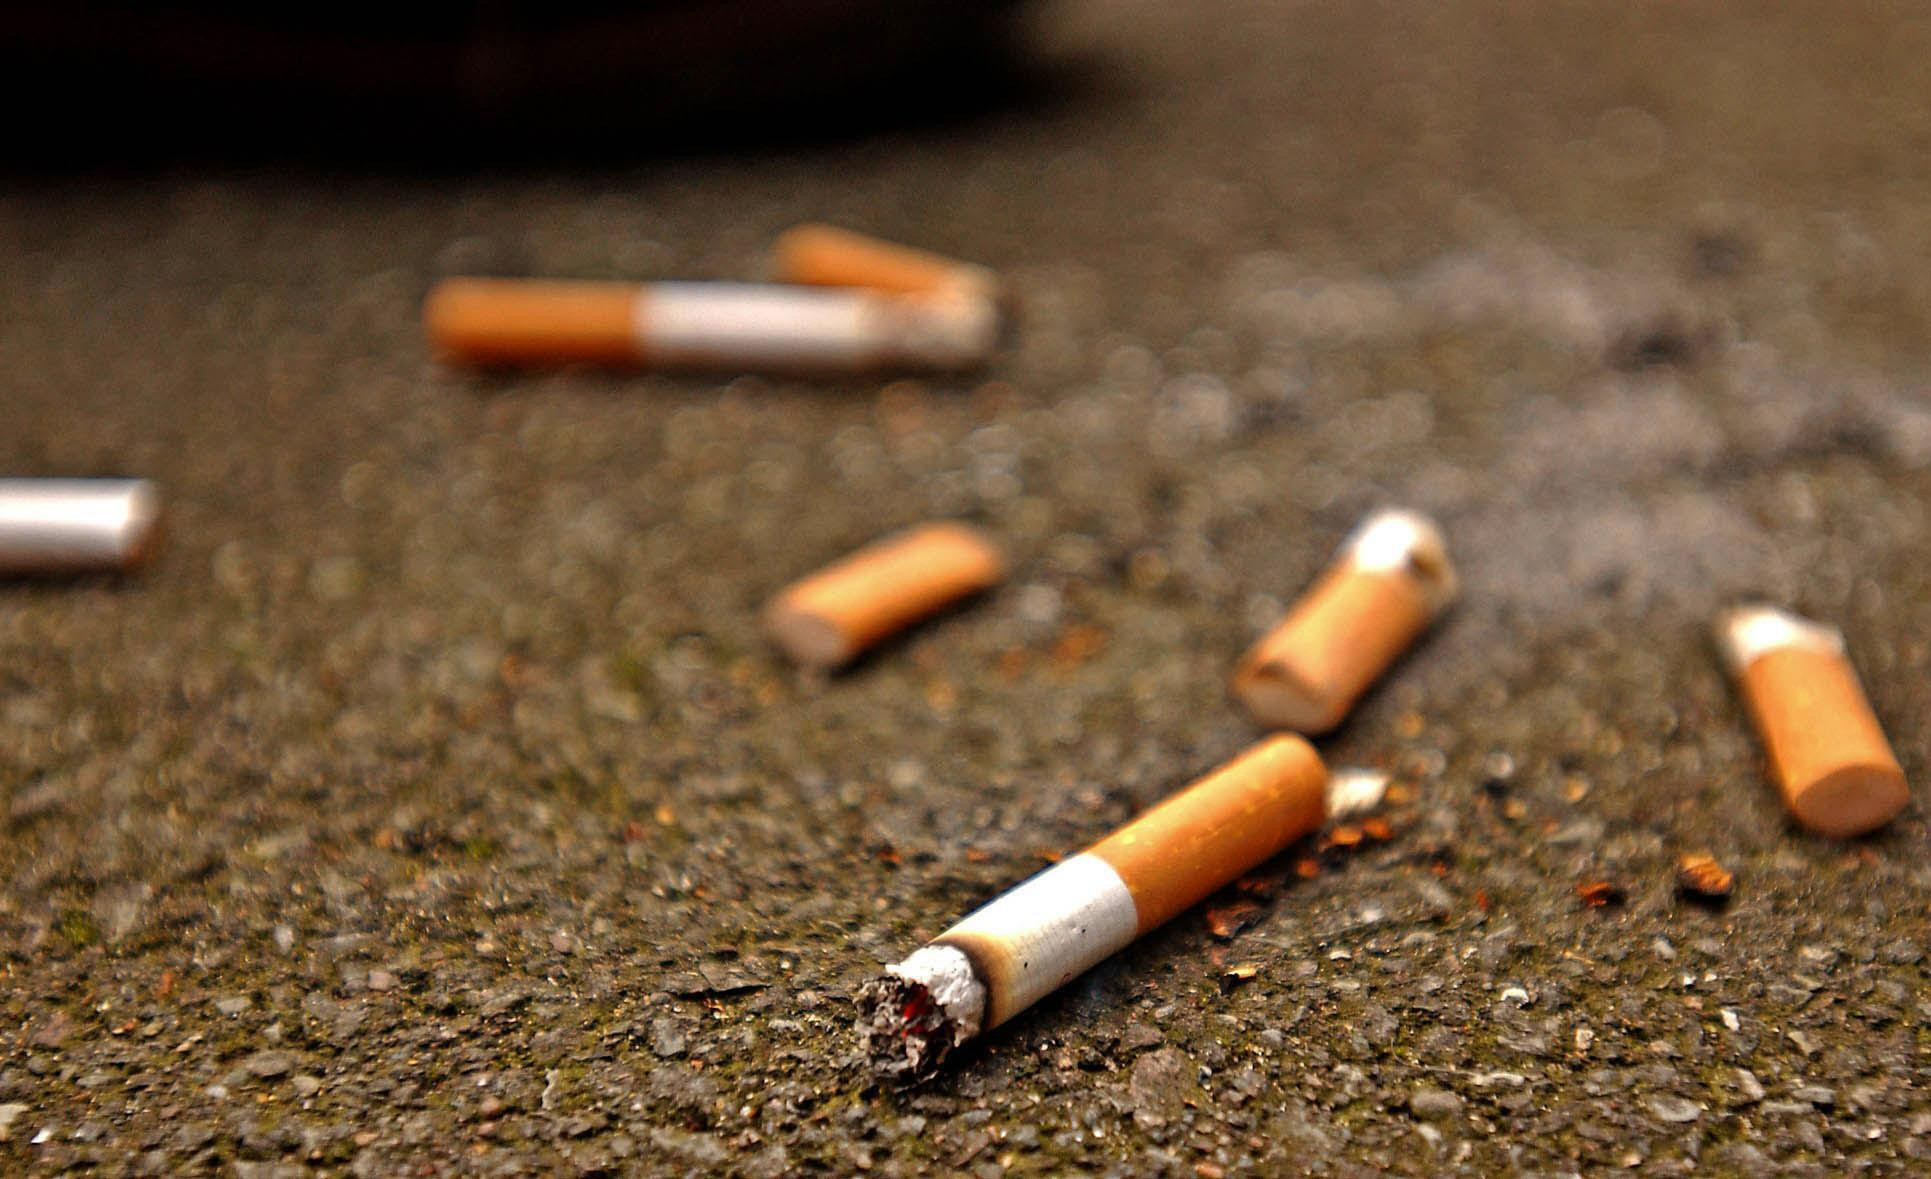 Smokers are the worst offenders on litter